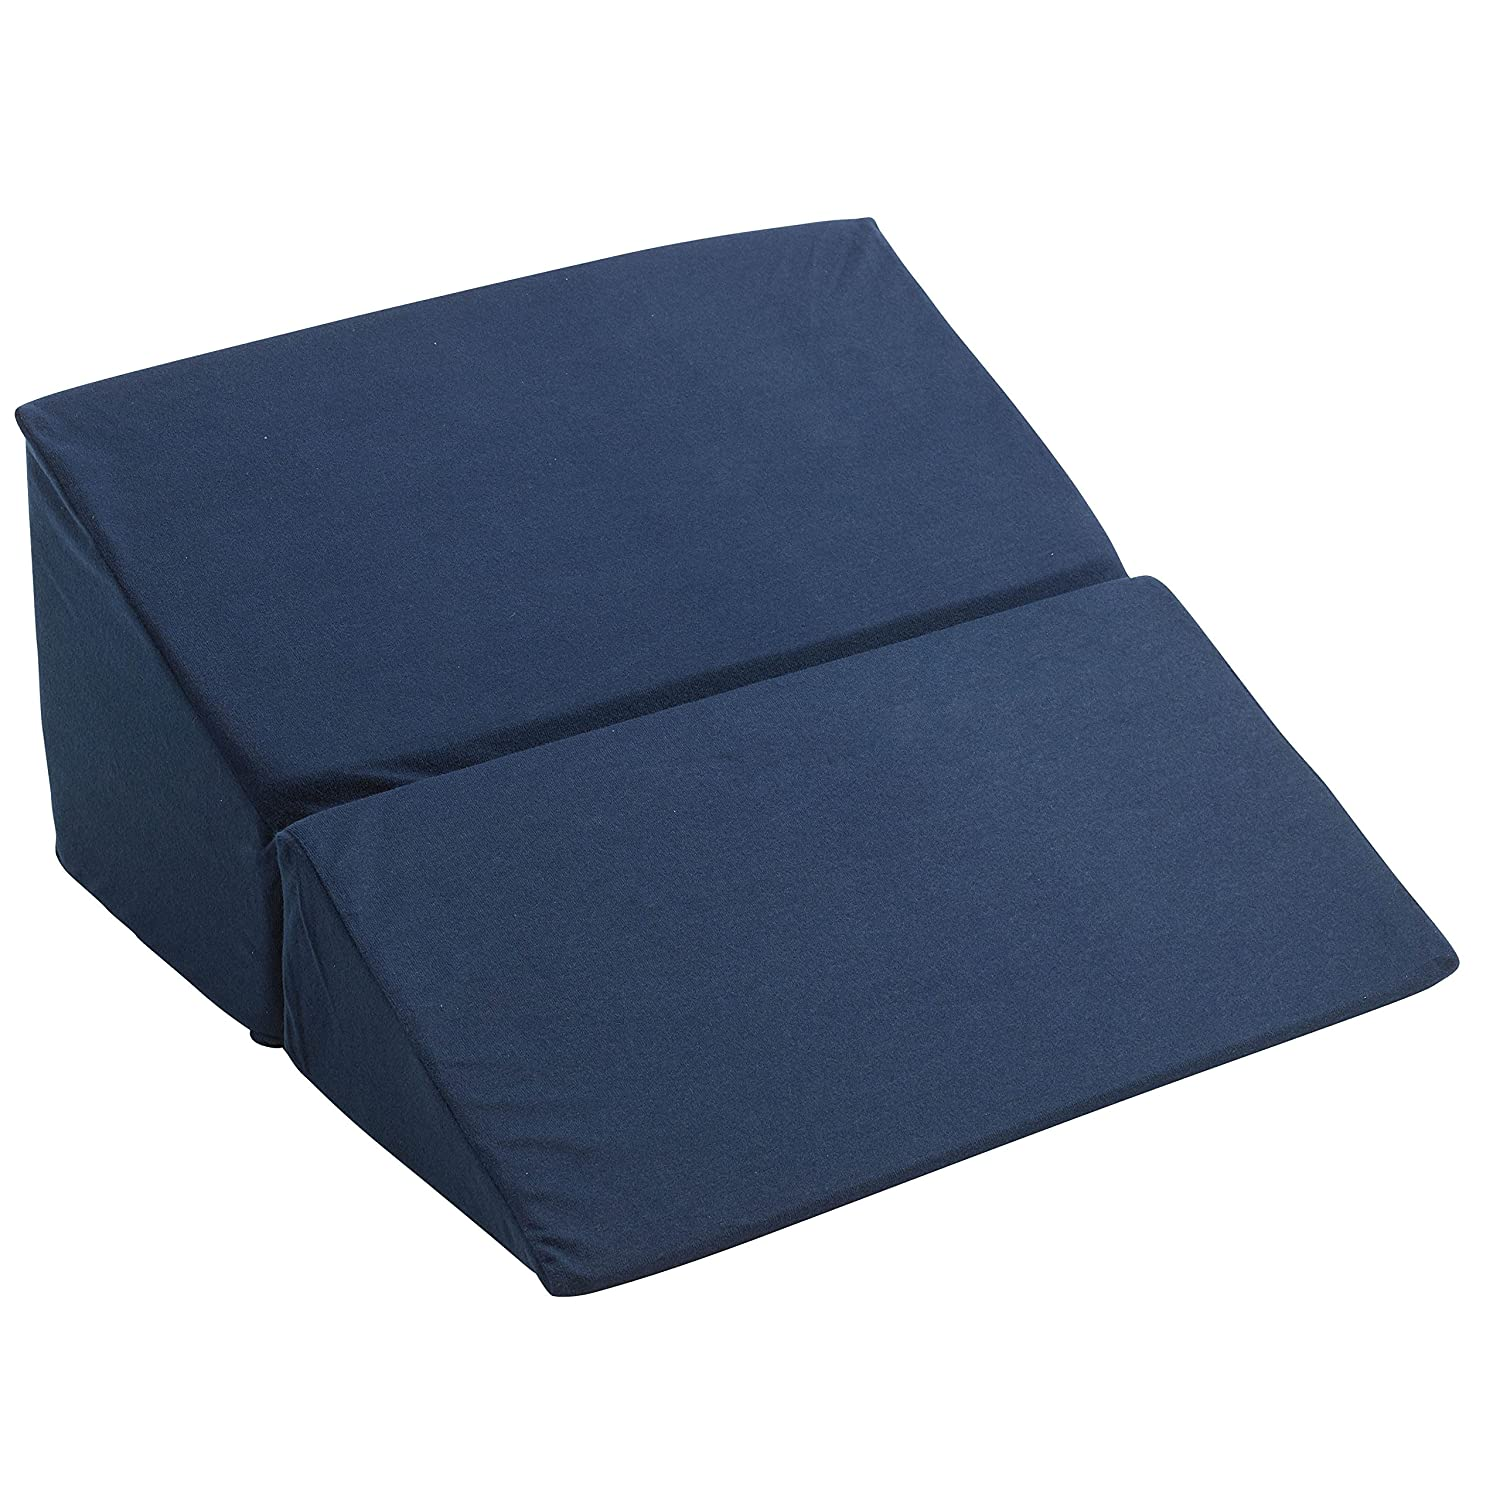 Water bed for patients - Drive Medical Folding Bed Wedge 12